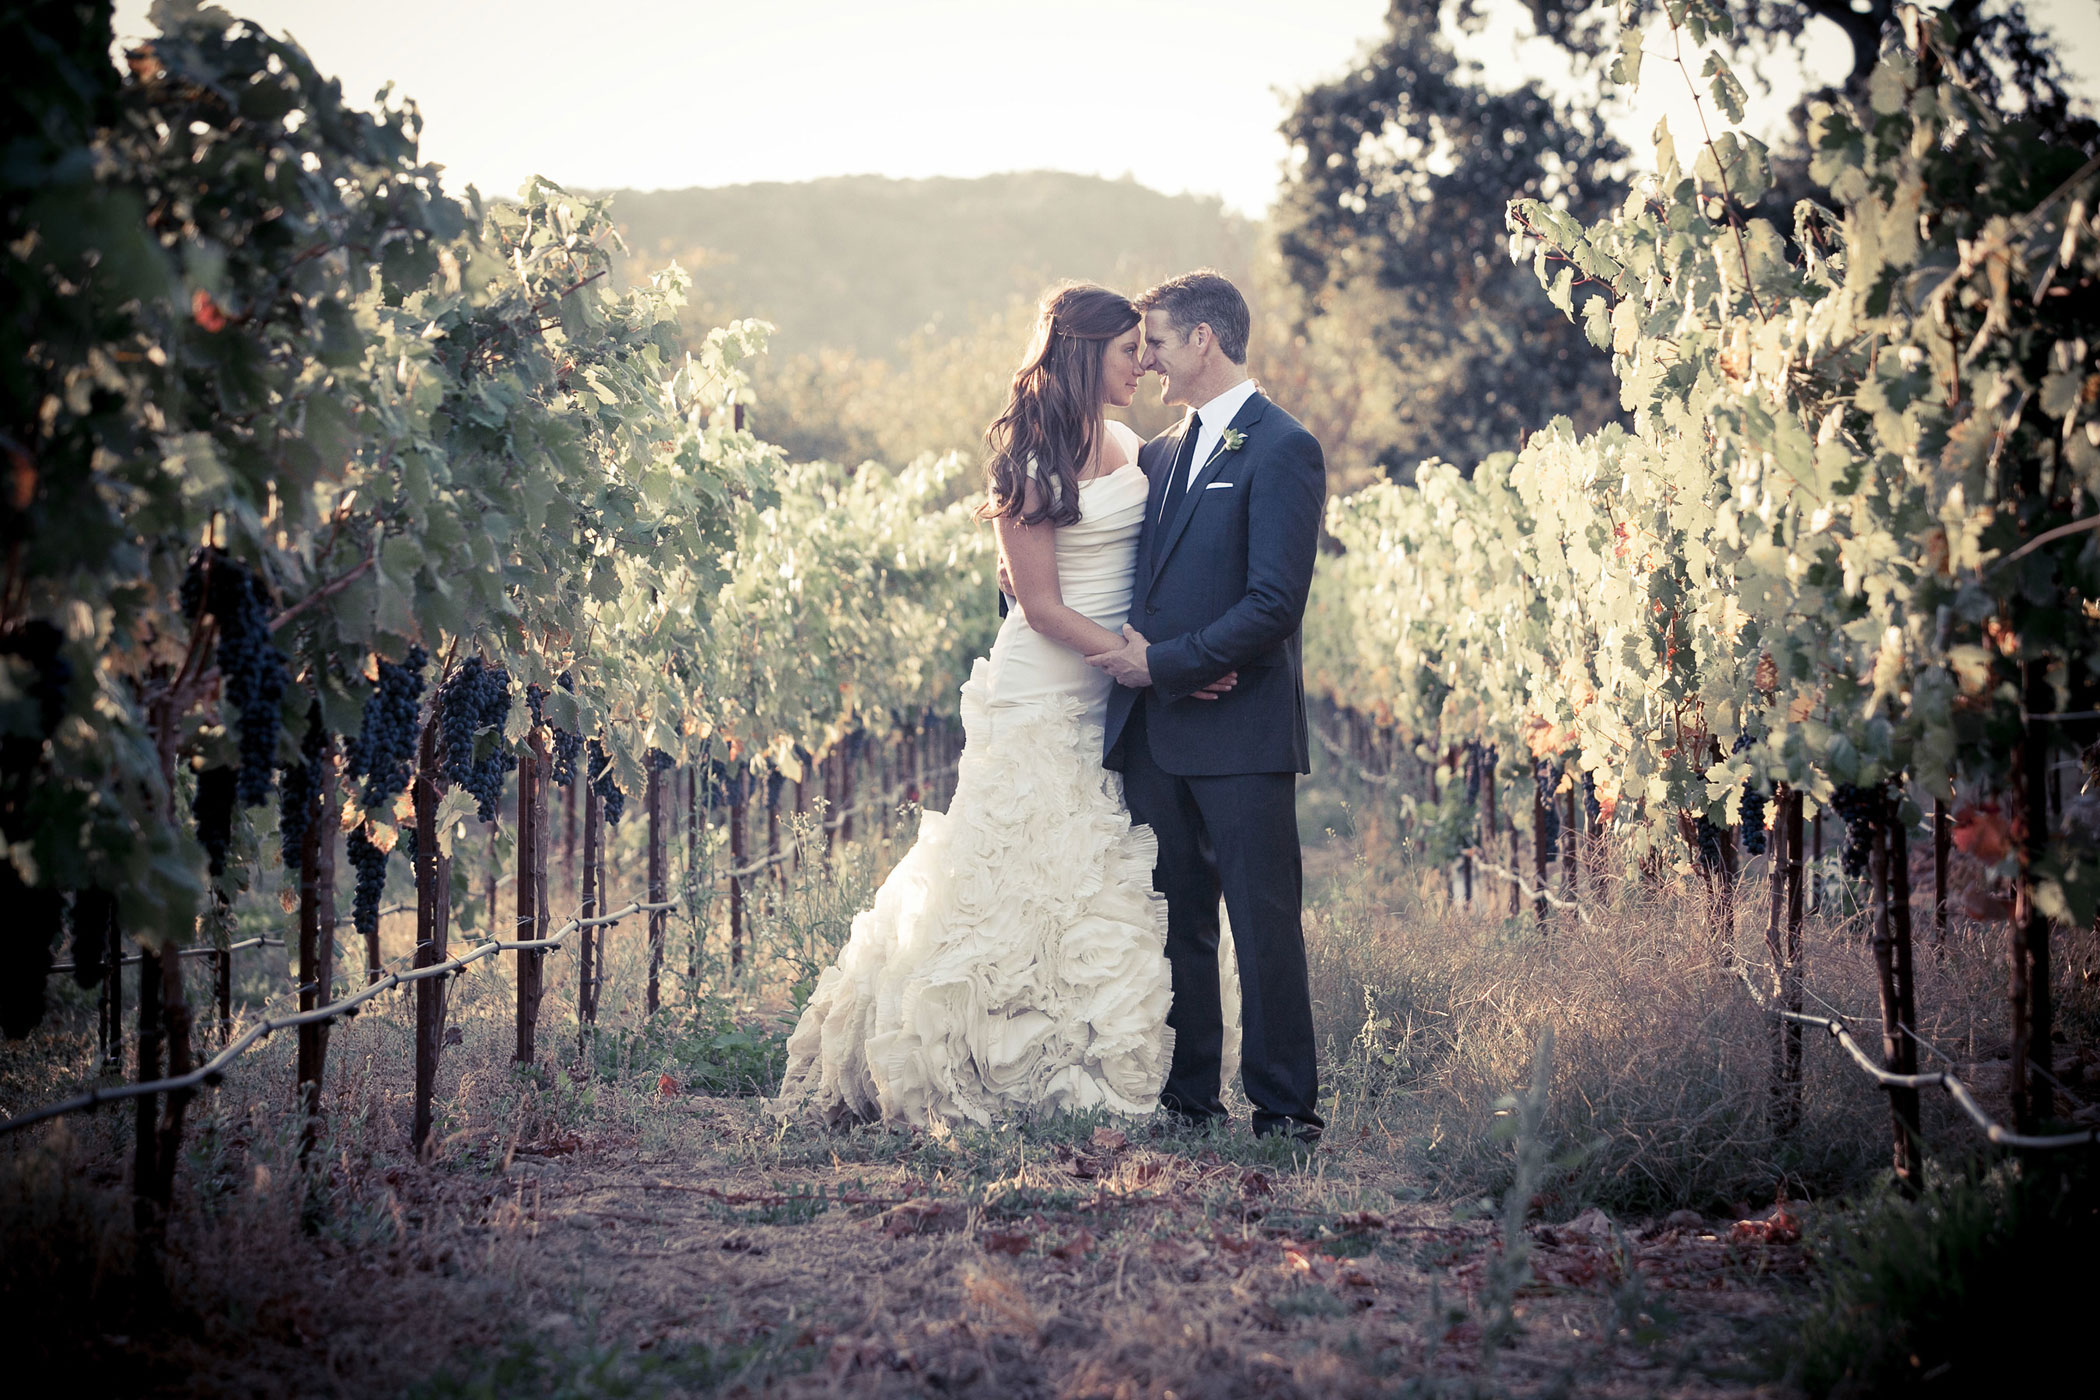 Death-with-dignity advocate Brittany Maynard and husband Dan Diaz at their wedding.